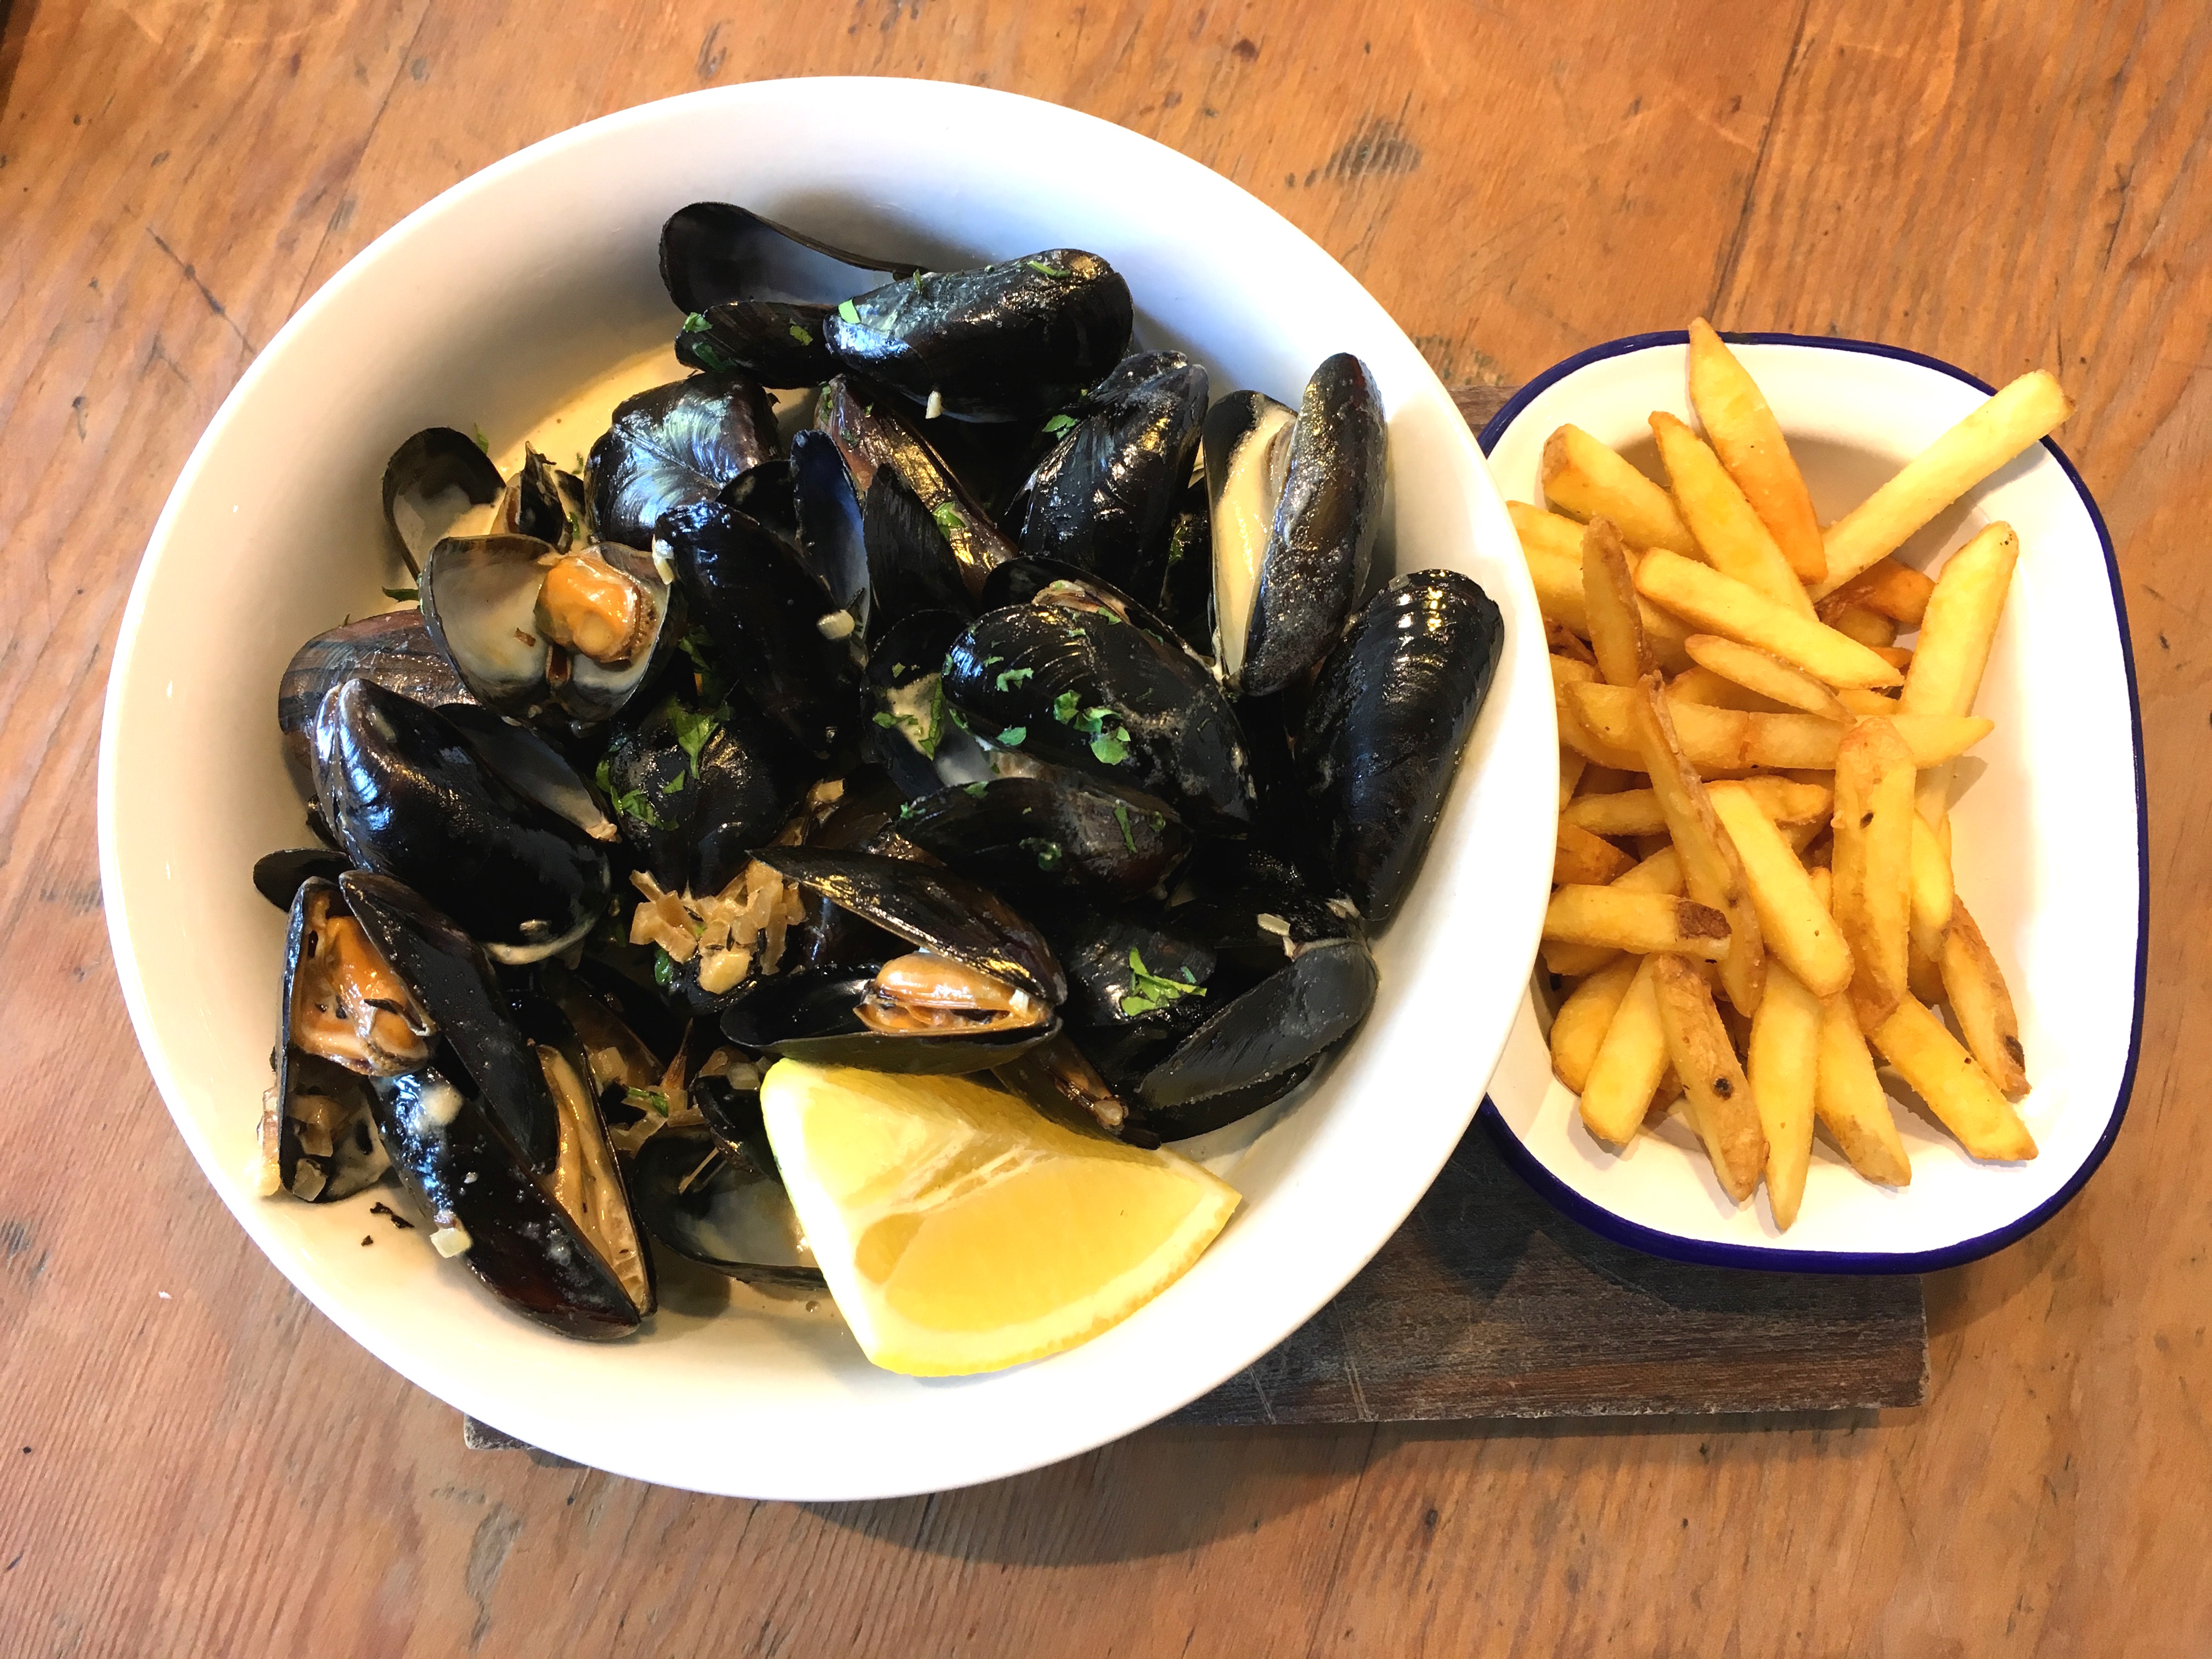 Mussels at No 1 harbourside